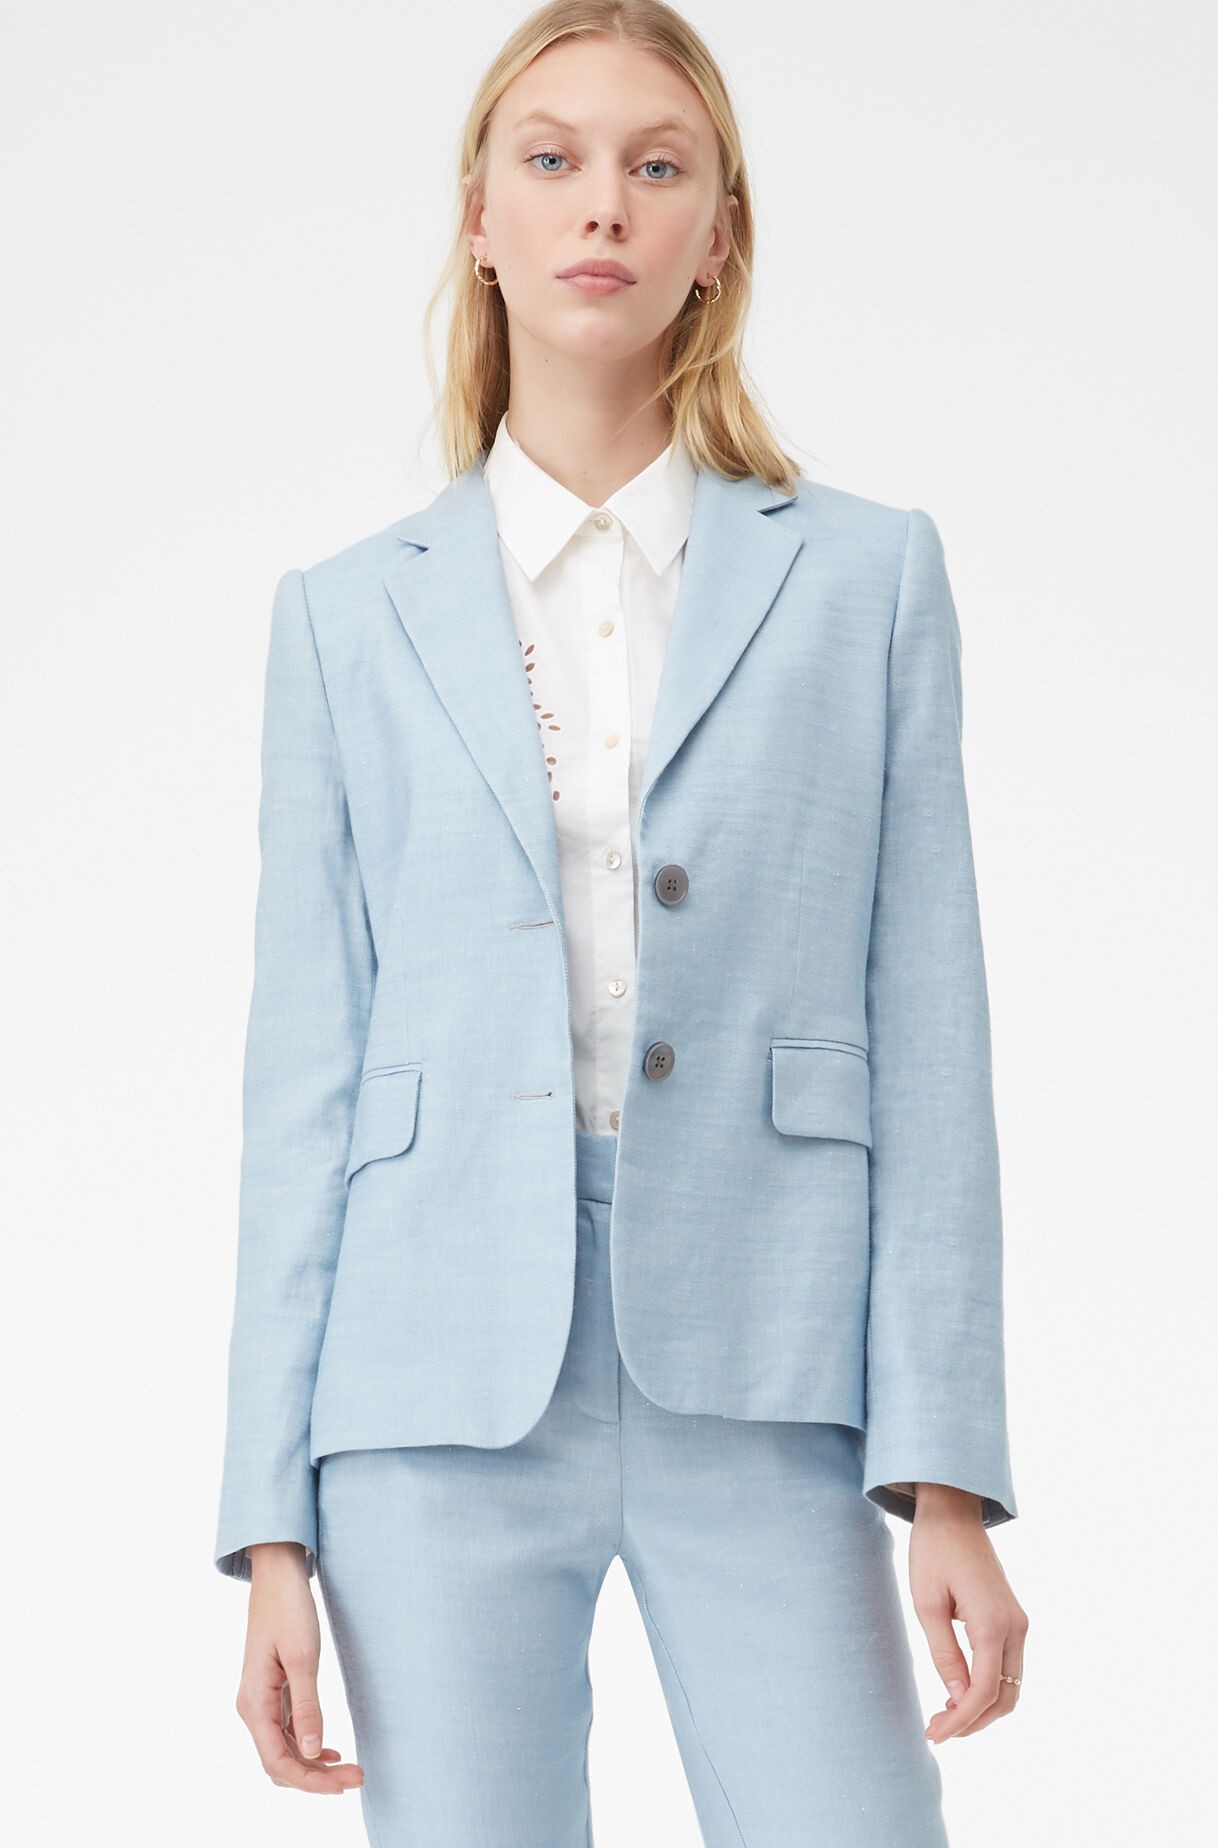 Tailored Twill Suiting Jacket, Washed Blue, large